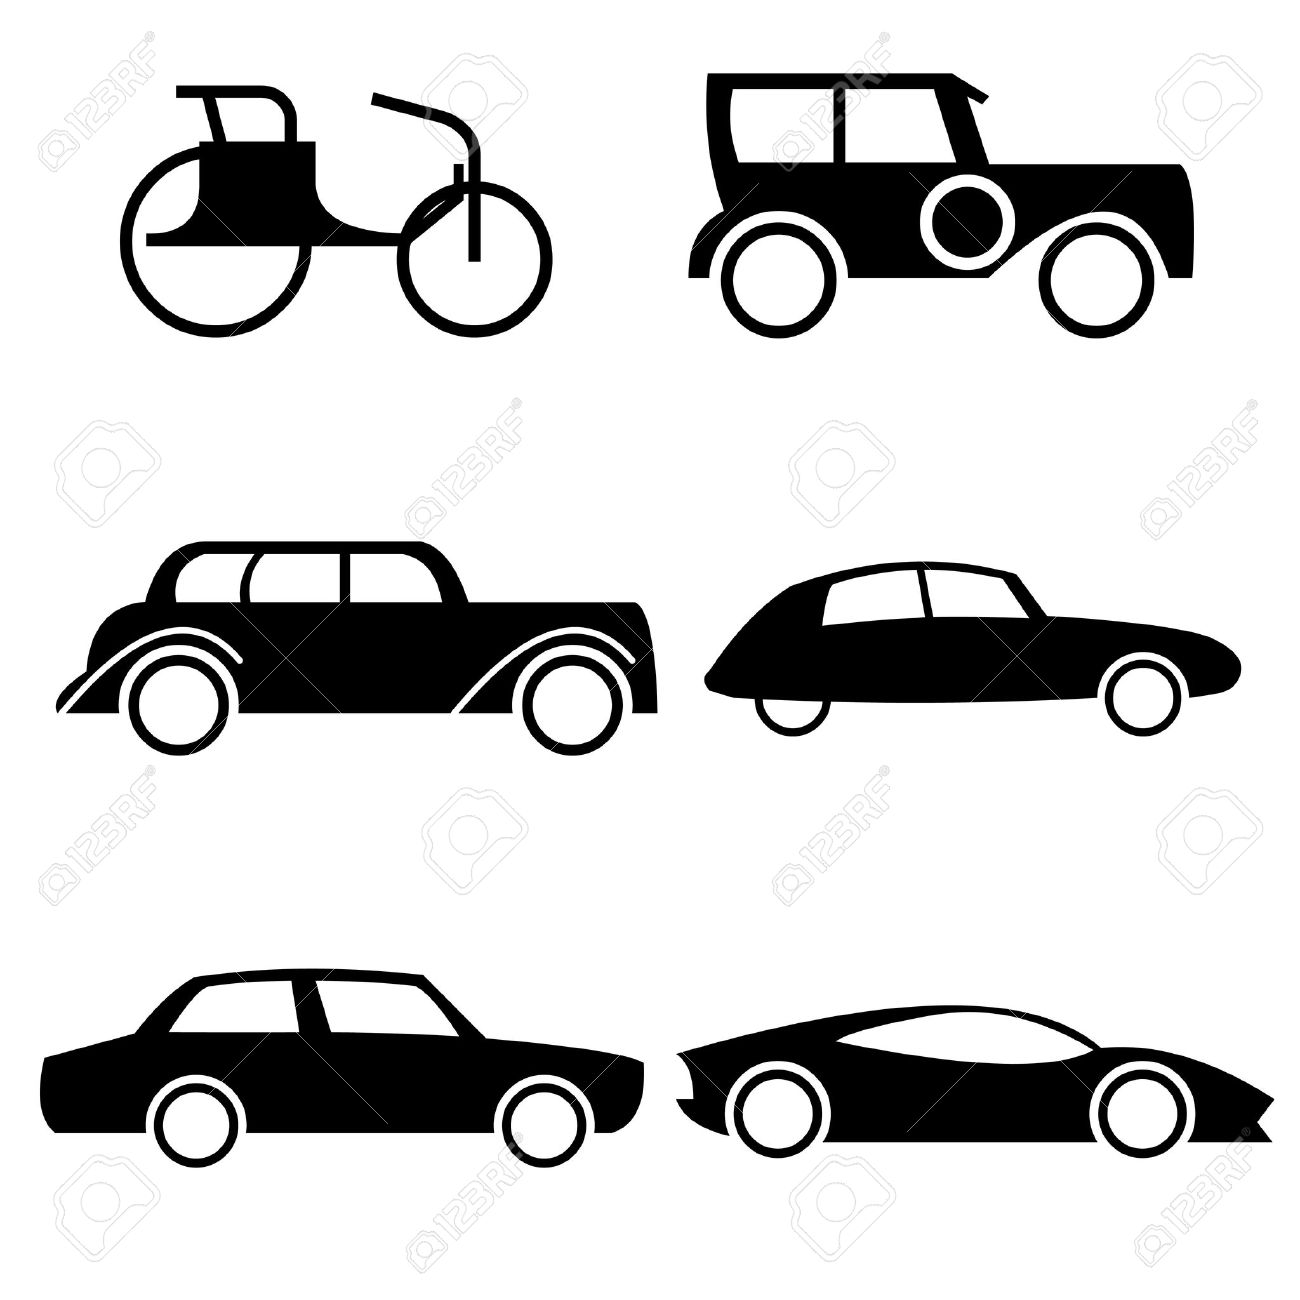 18 195 car side stock vector illustration and royalty free car